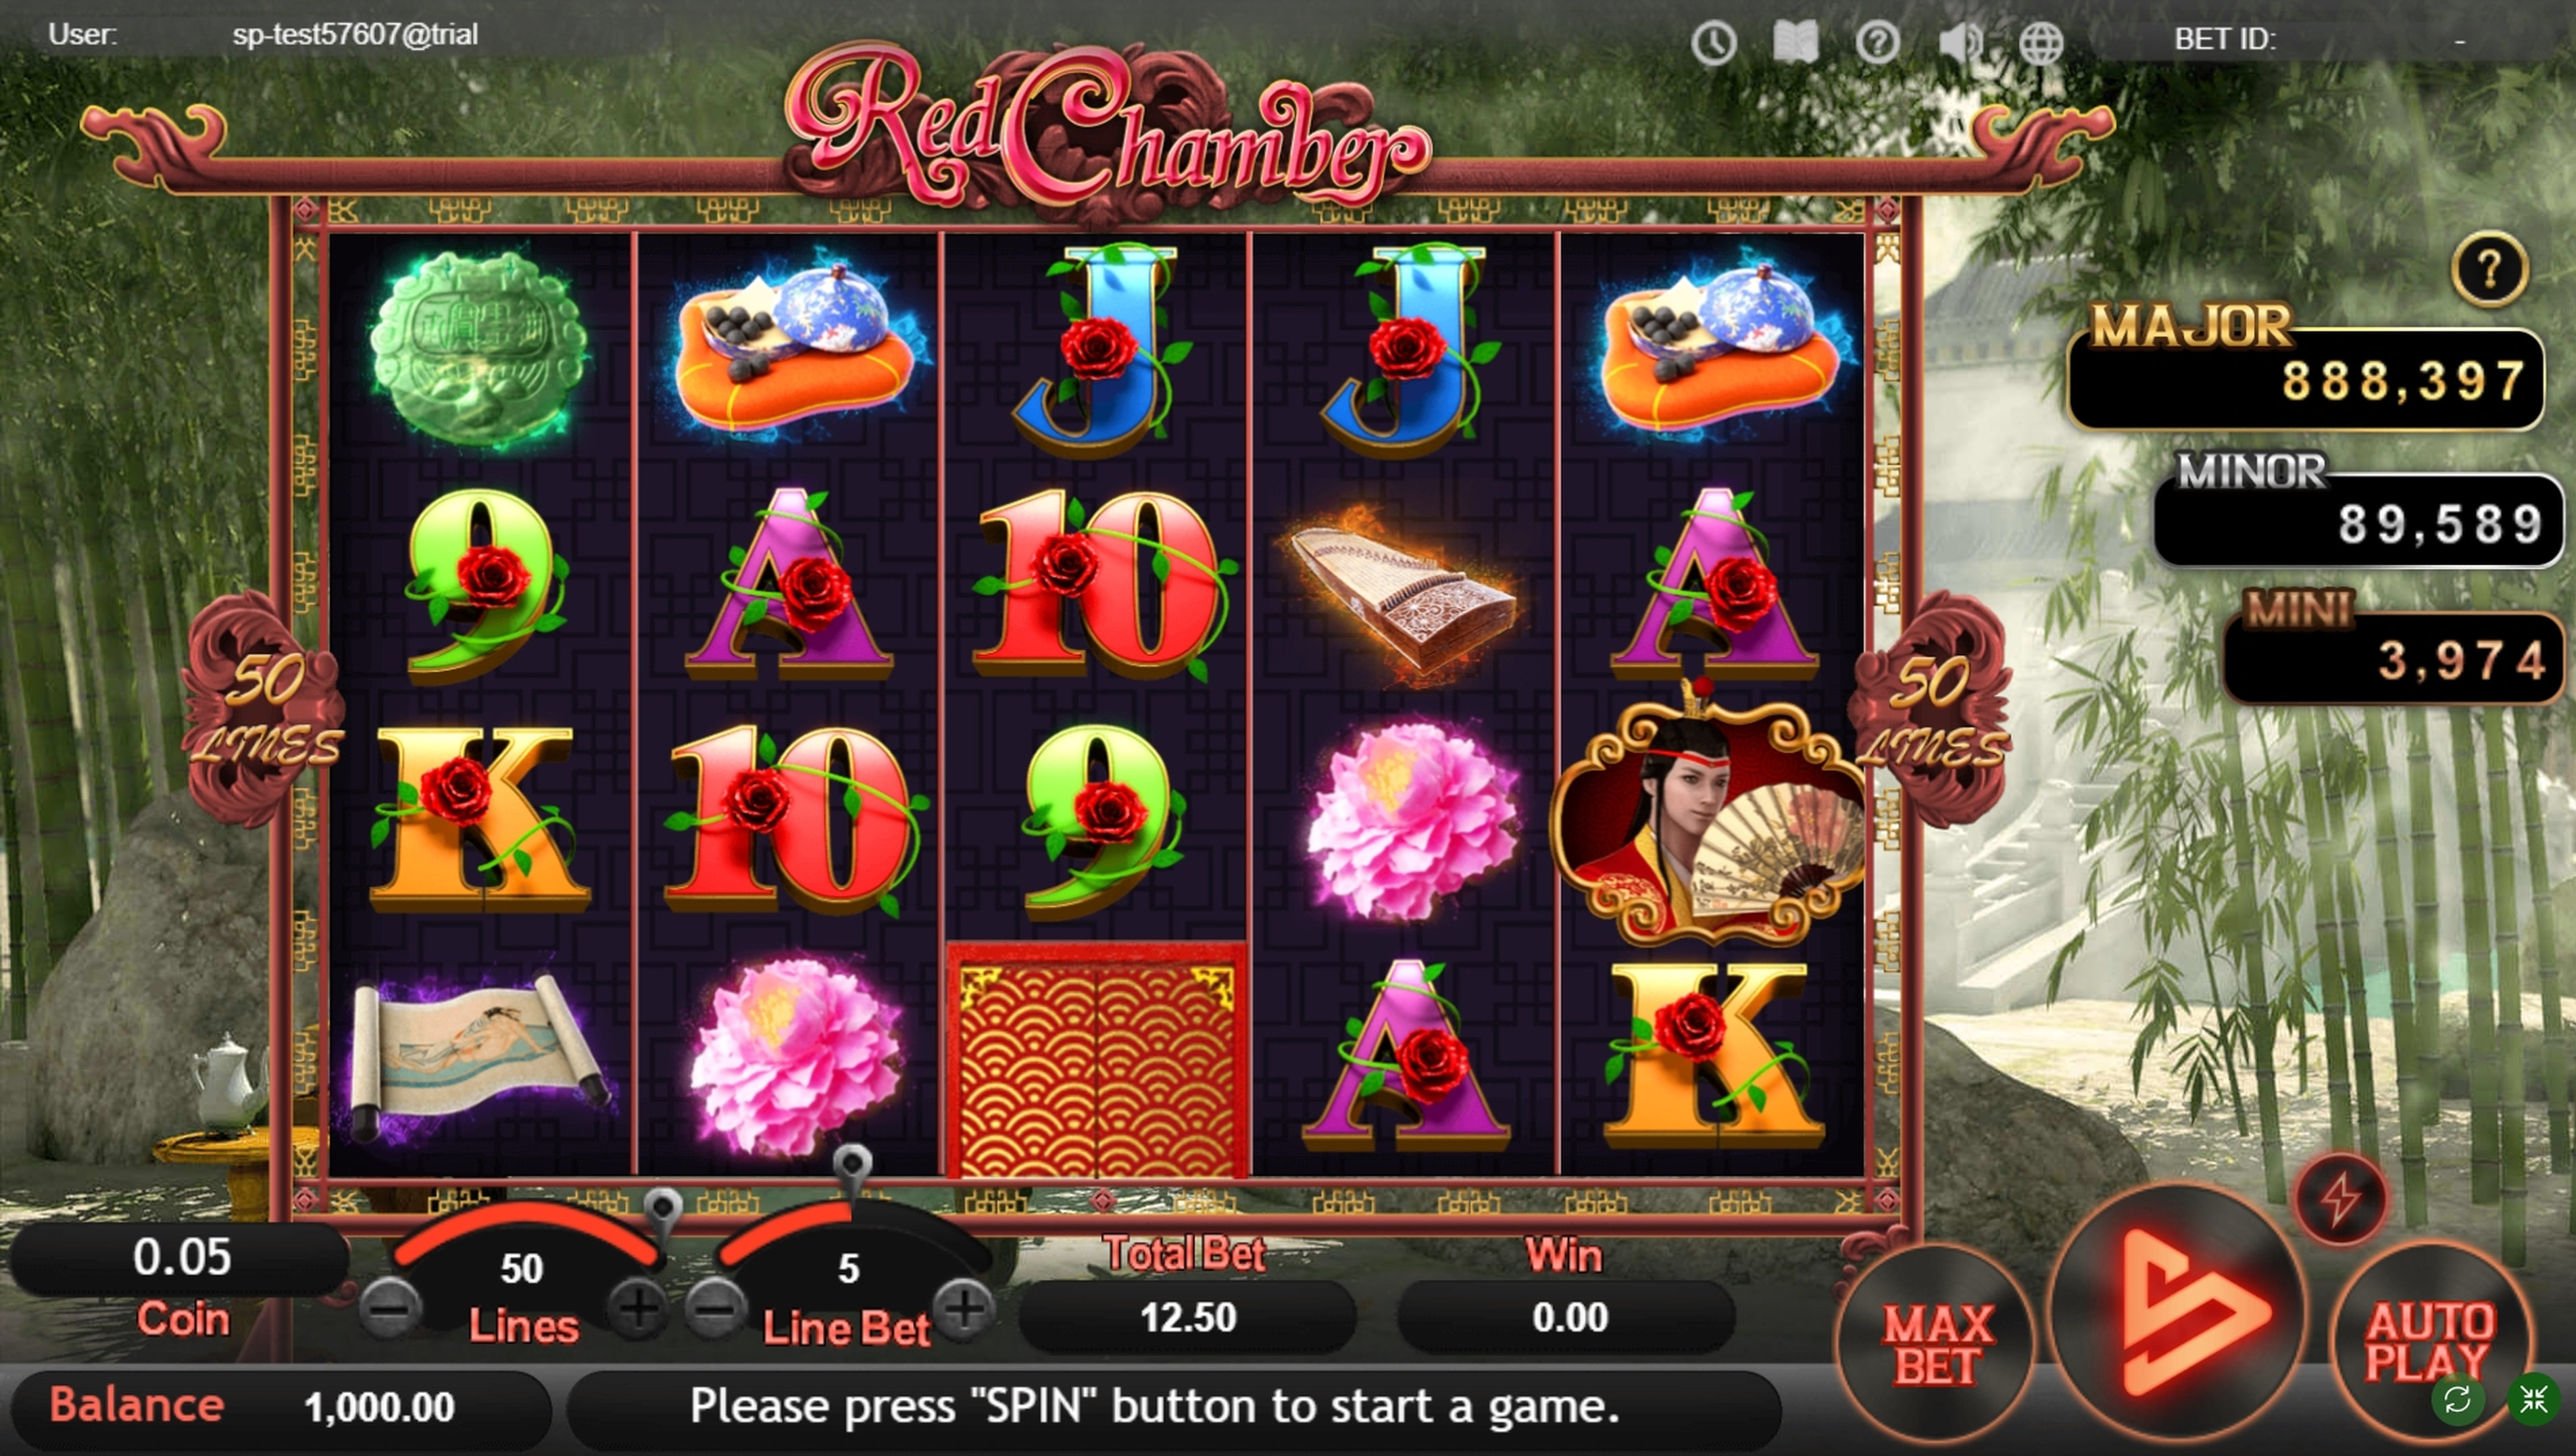 Reels in Red Chamber Slot Game by SimplePlay